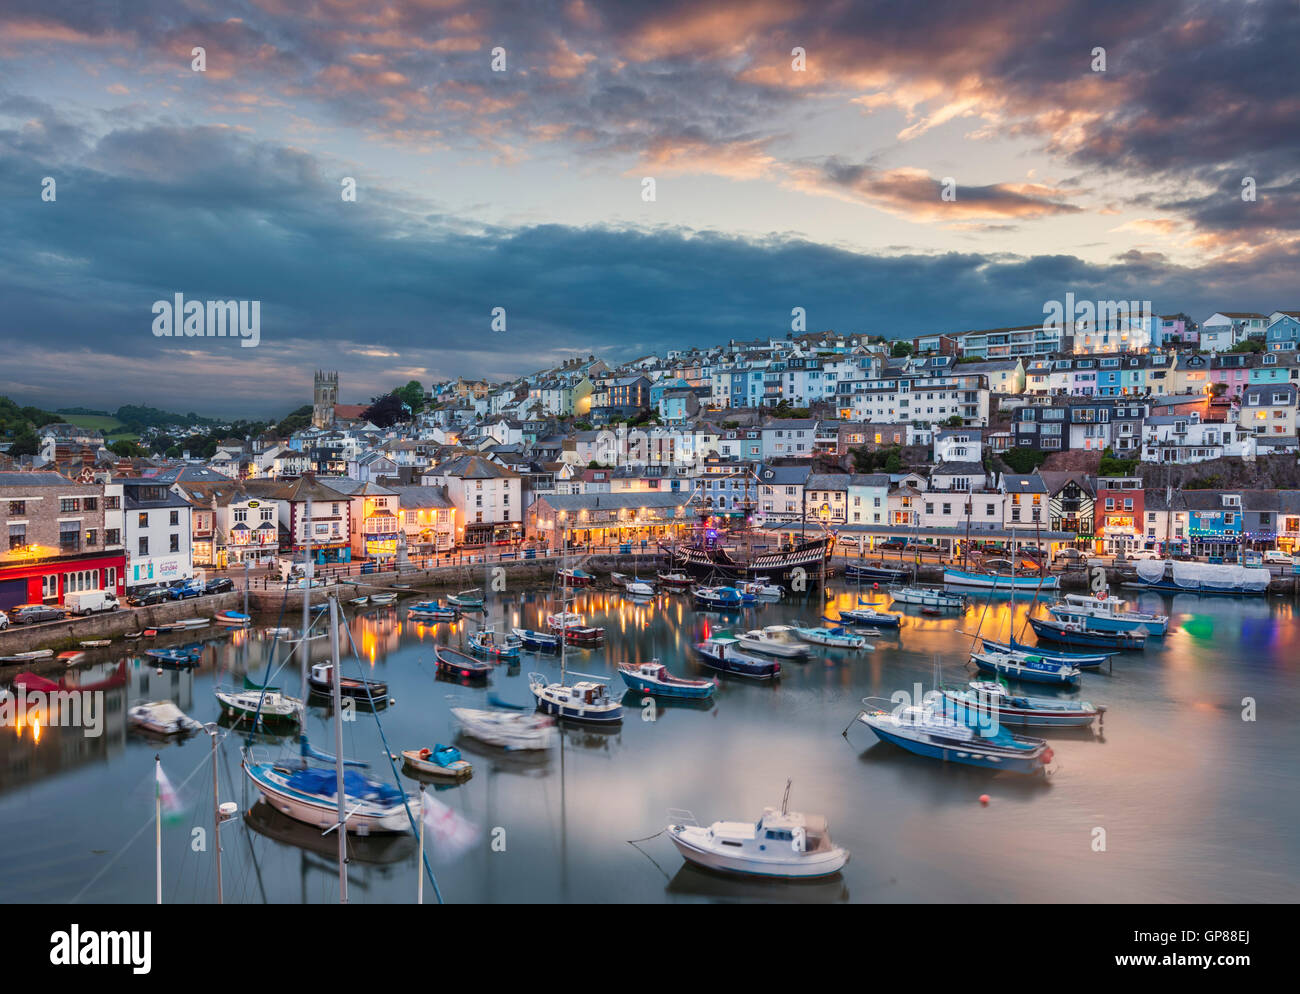 Port de Brixham Devon Brixham au coucher du soleil l'Angleterre UK GB EU Europe Photo Stock